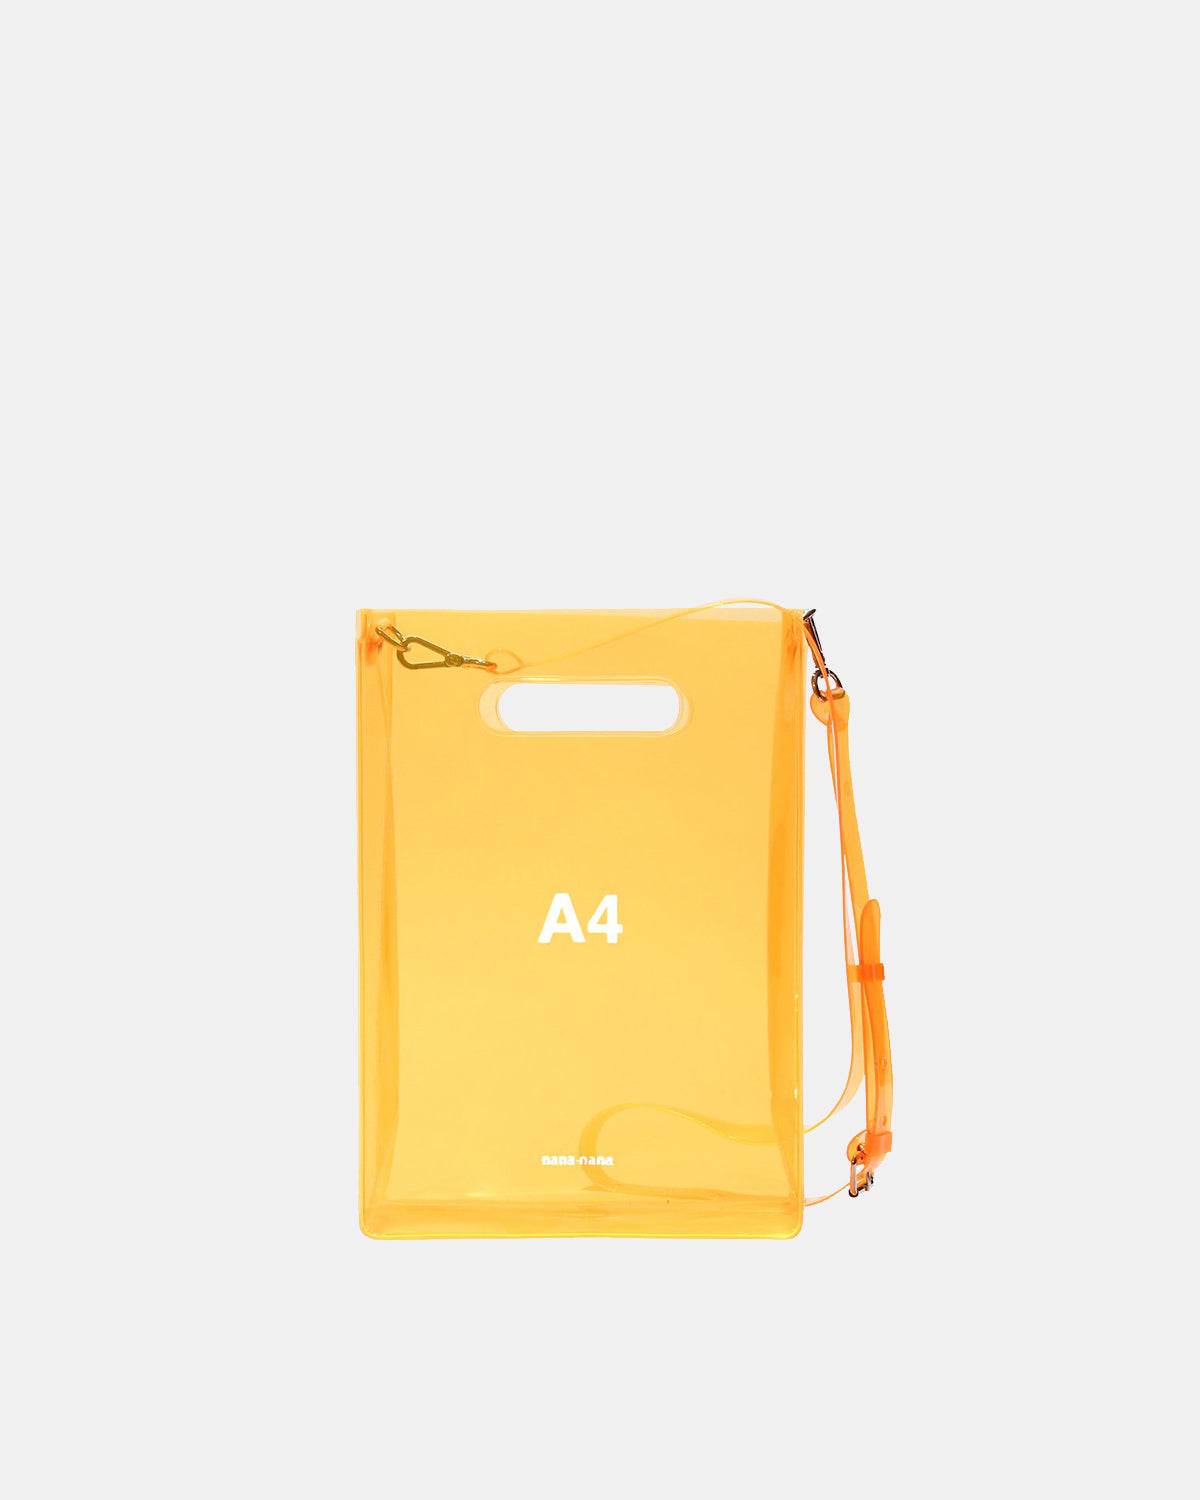 nana-nana - A4 PVC Bag (Neon Orange)